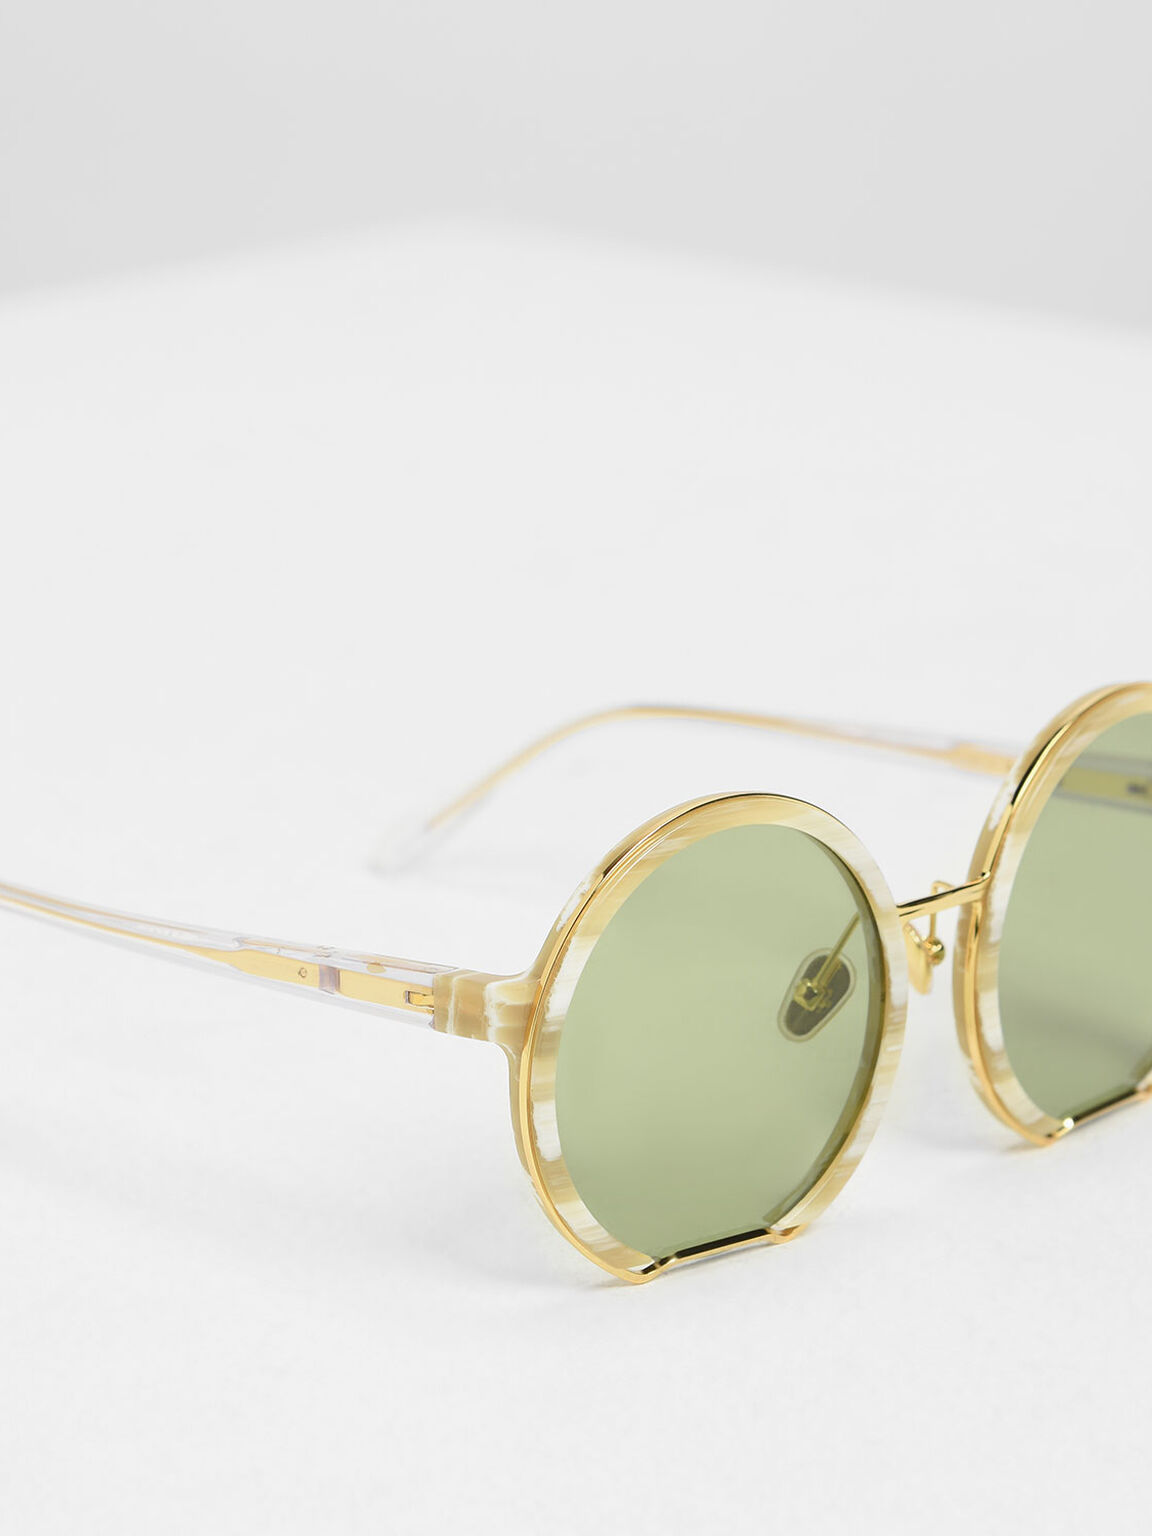 Cut Off Frame Round Sunglasses, Cream, hi-res